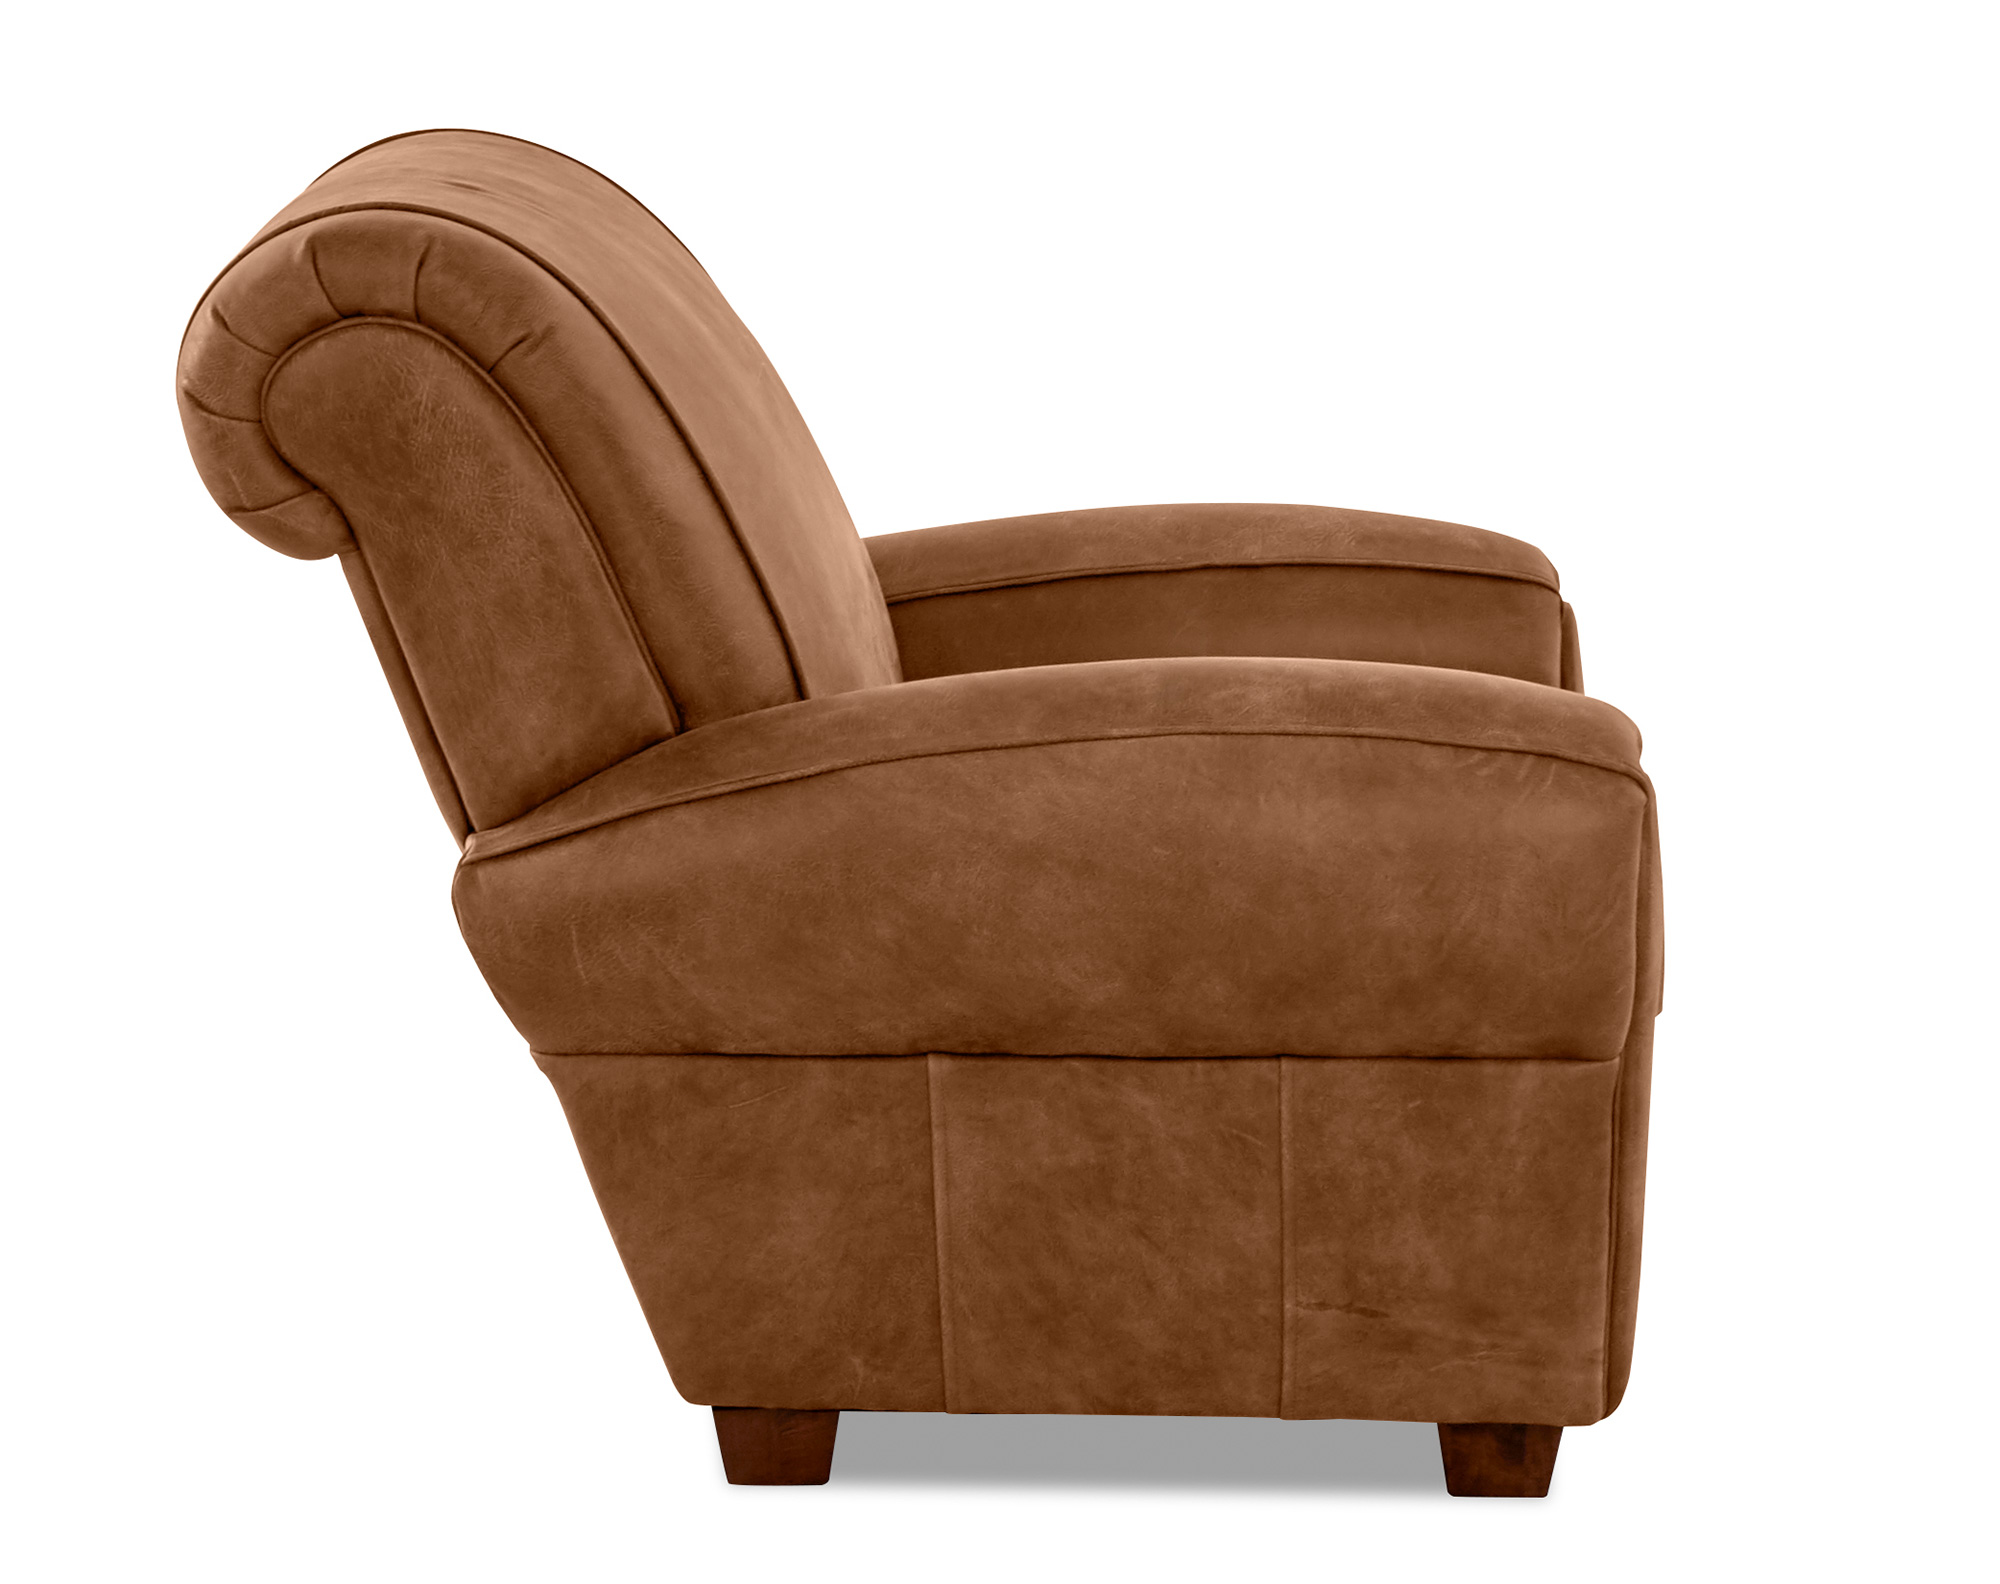 Superb Aiden Leather Accent Chair And Ottoman 2 Sofas And Sectionals Dailytribune Chair Design For Home Dailytribuneorg